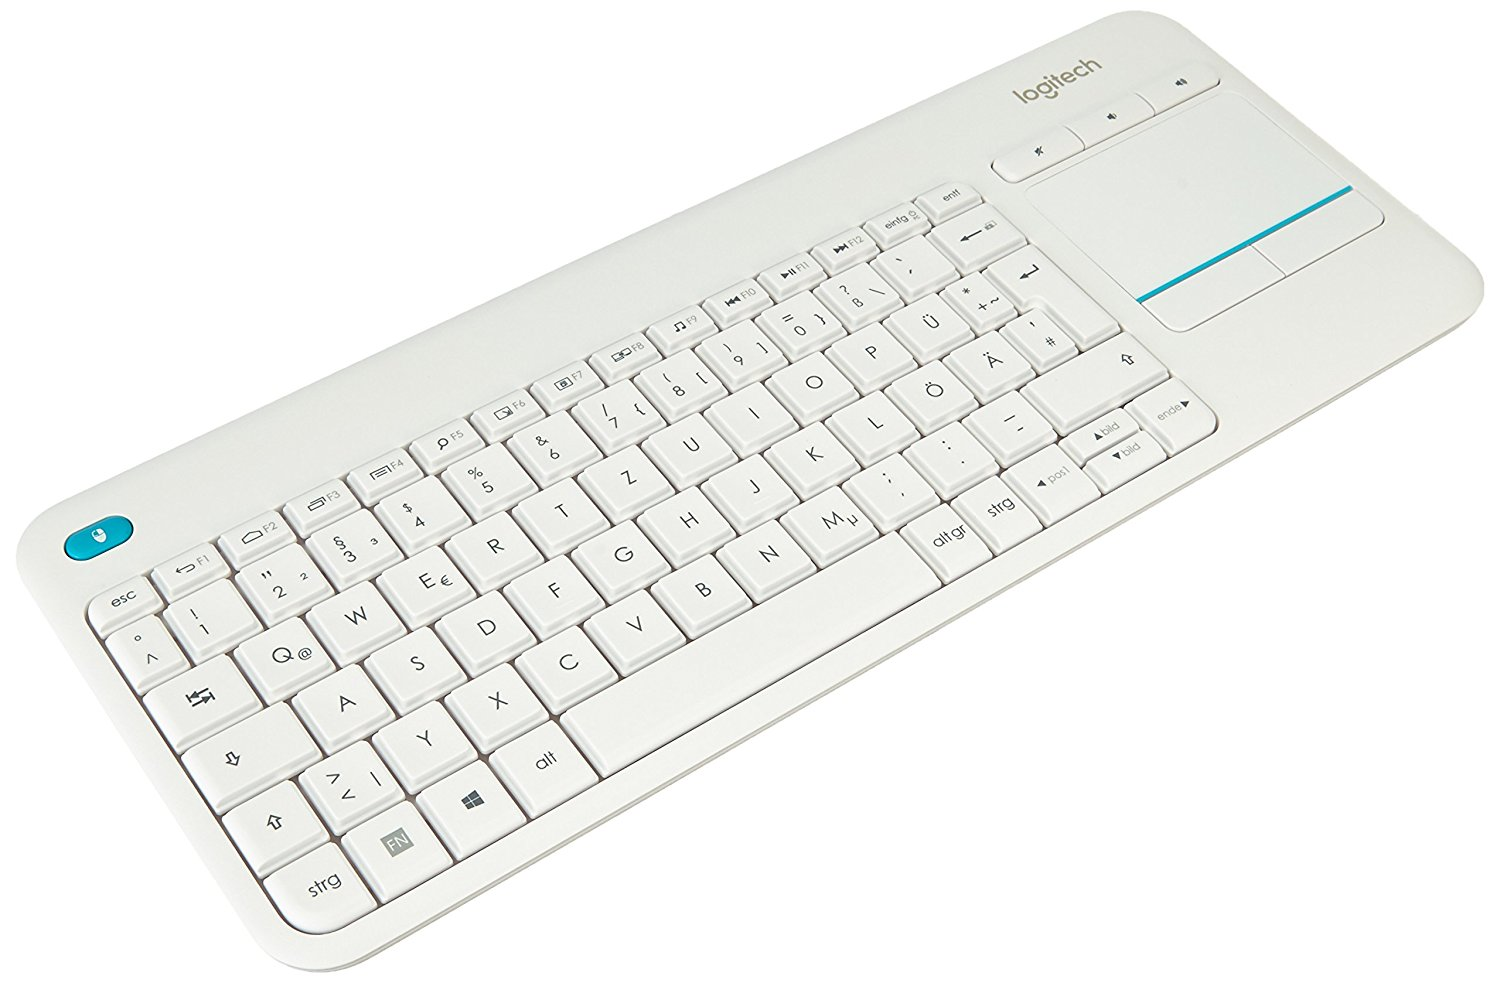 Logitech Tastatur Touchpad amazon